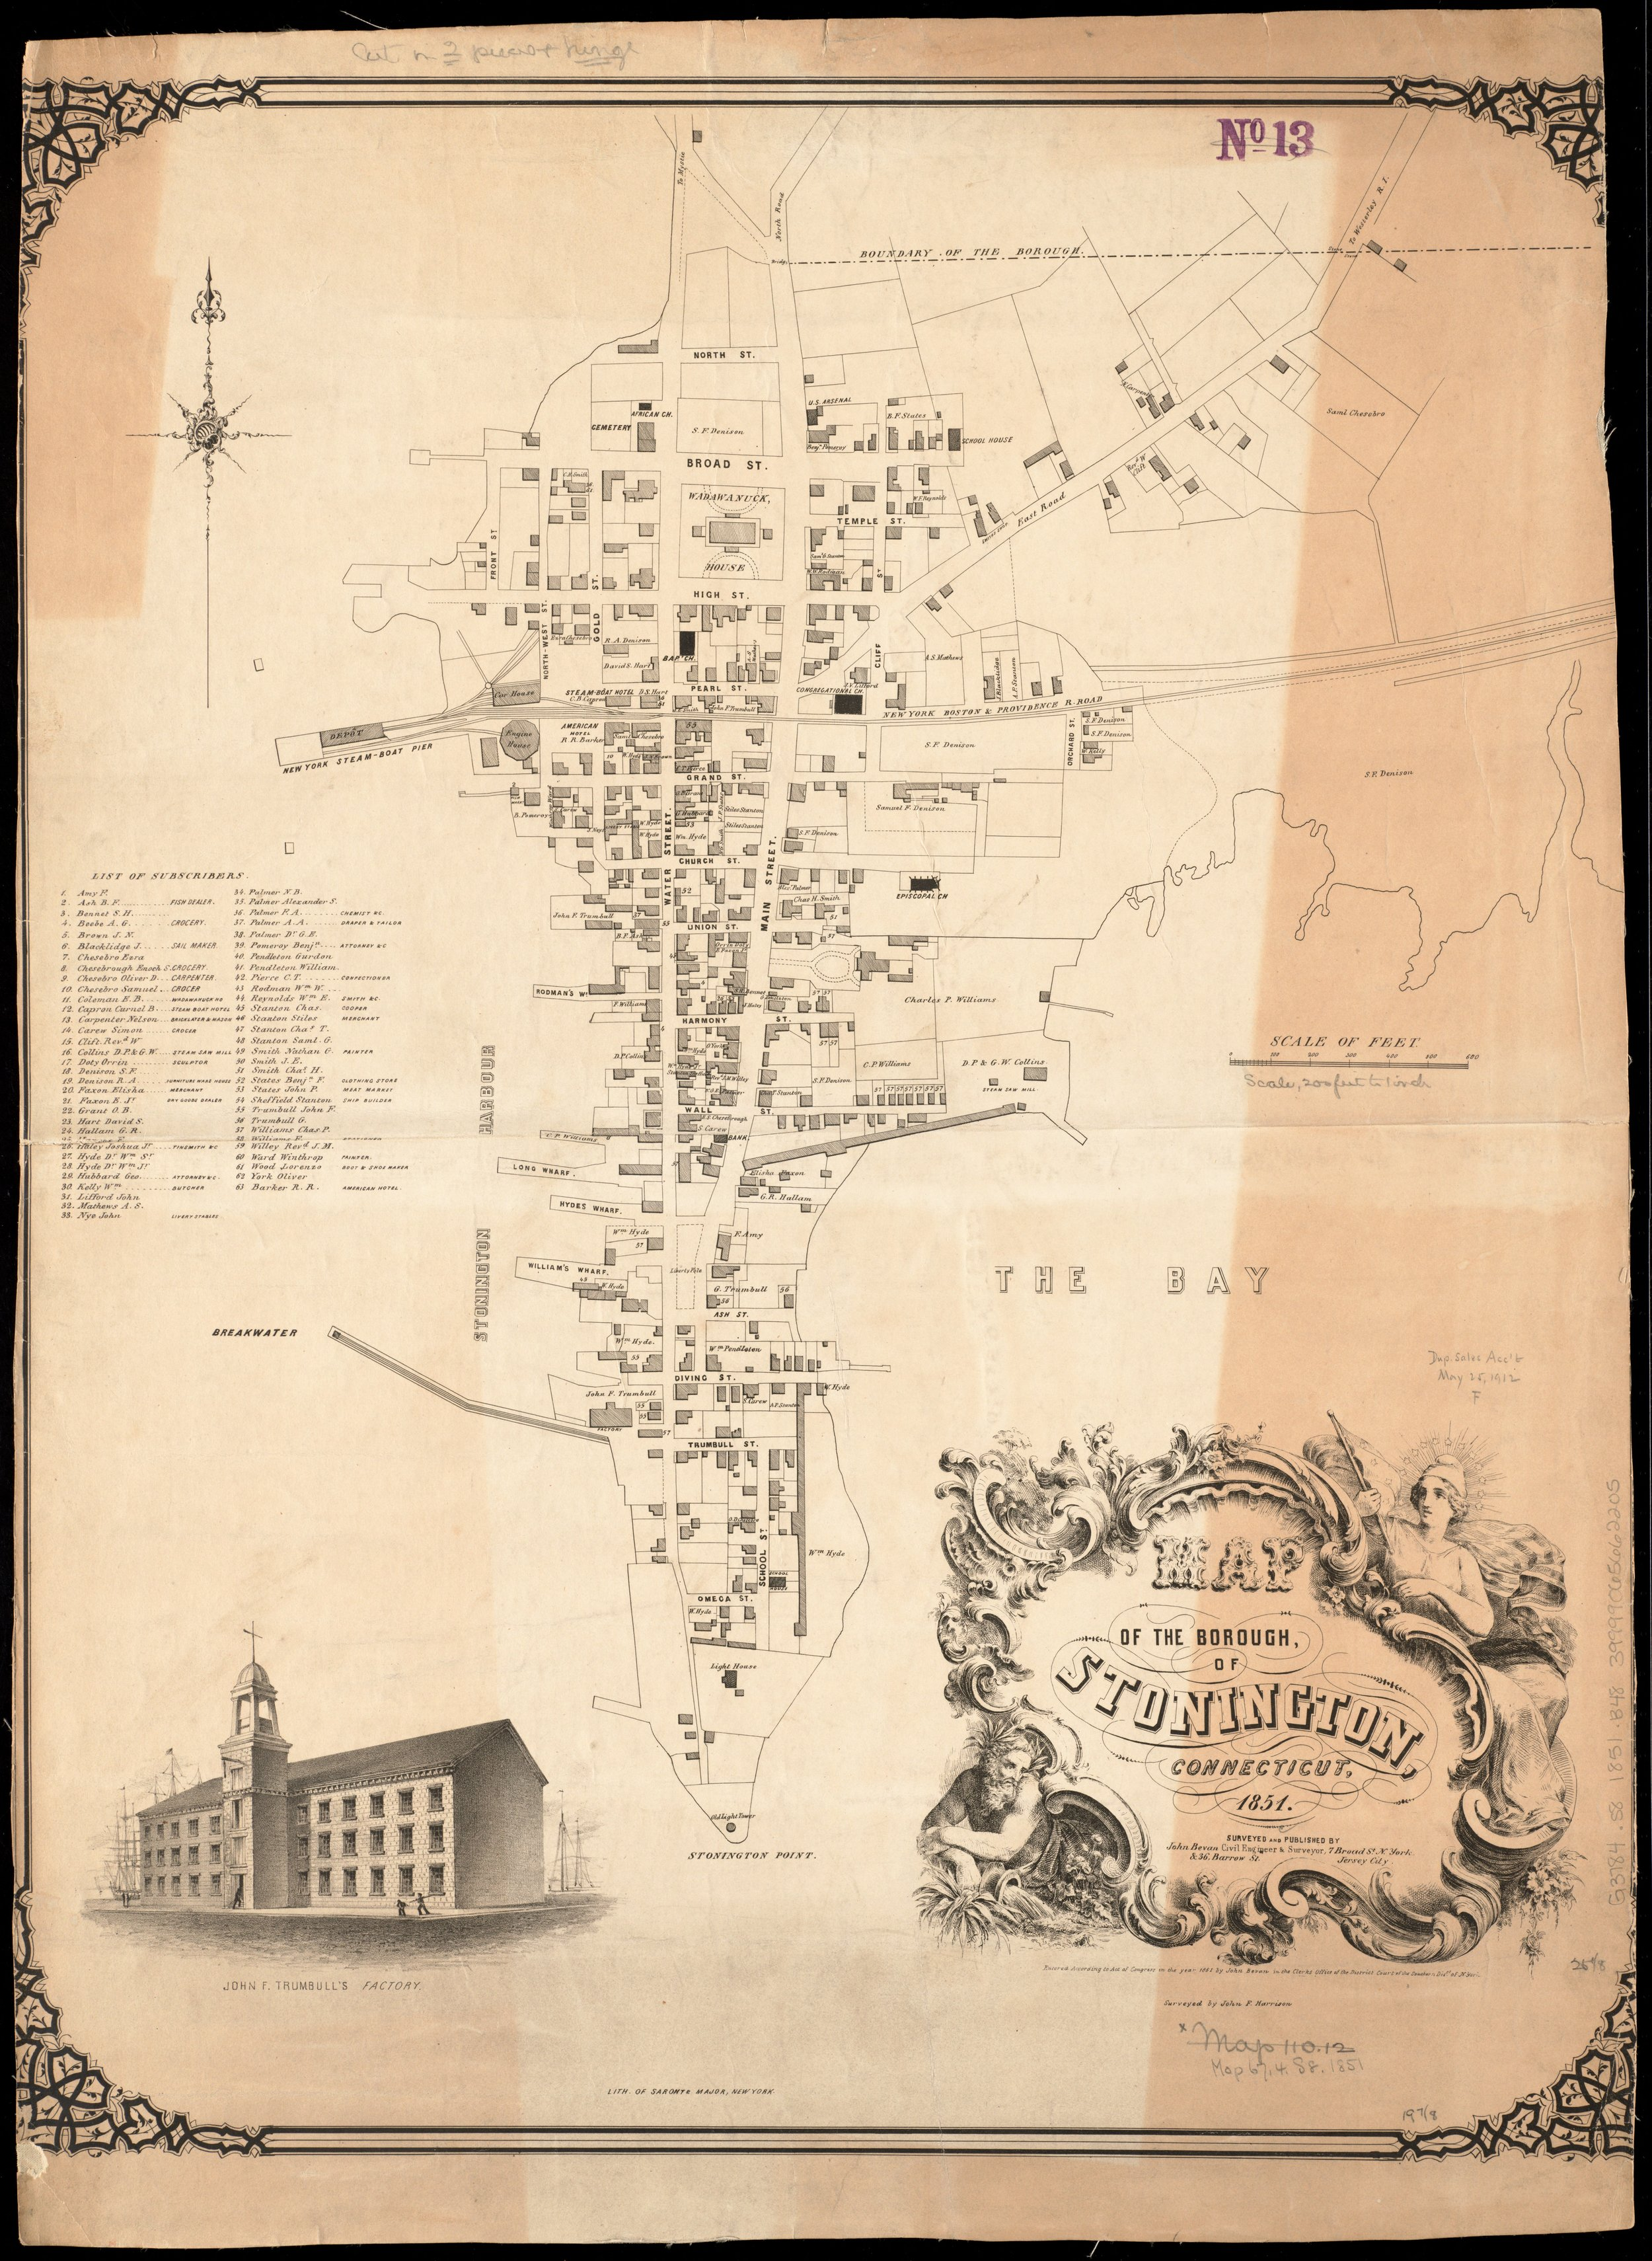 This map from 1851 shows the New York Boston & Providence Railroad line as it ran through the middle of Stonington Borough, out to New York Steam-Boat Pier, now the site of the current Town Dock.